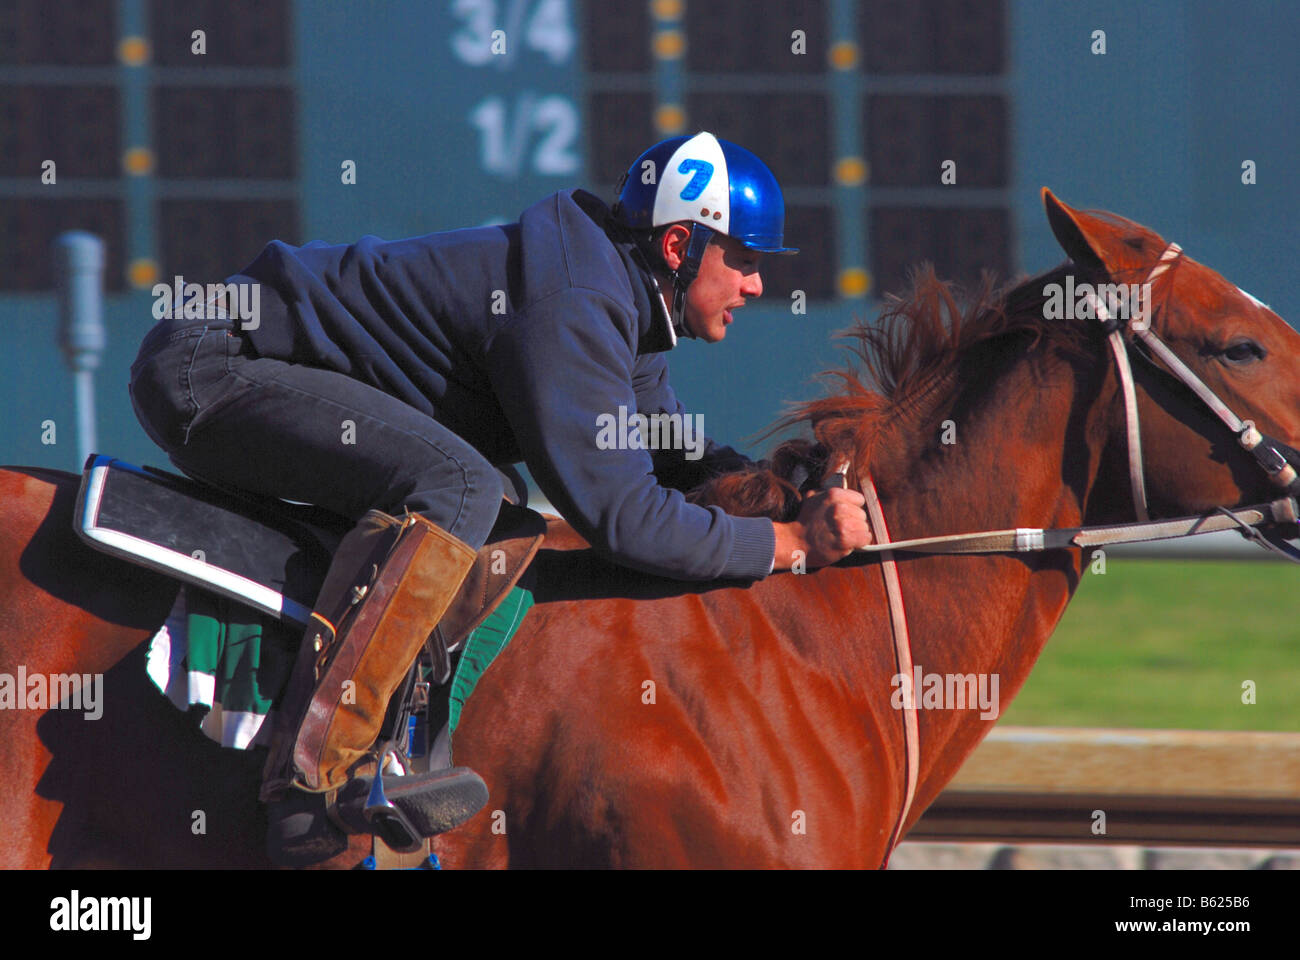 Horse racing jockey on a horse racing on an American race track - Stock Image